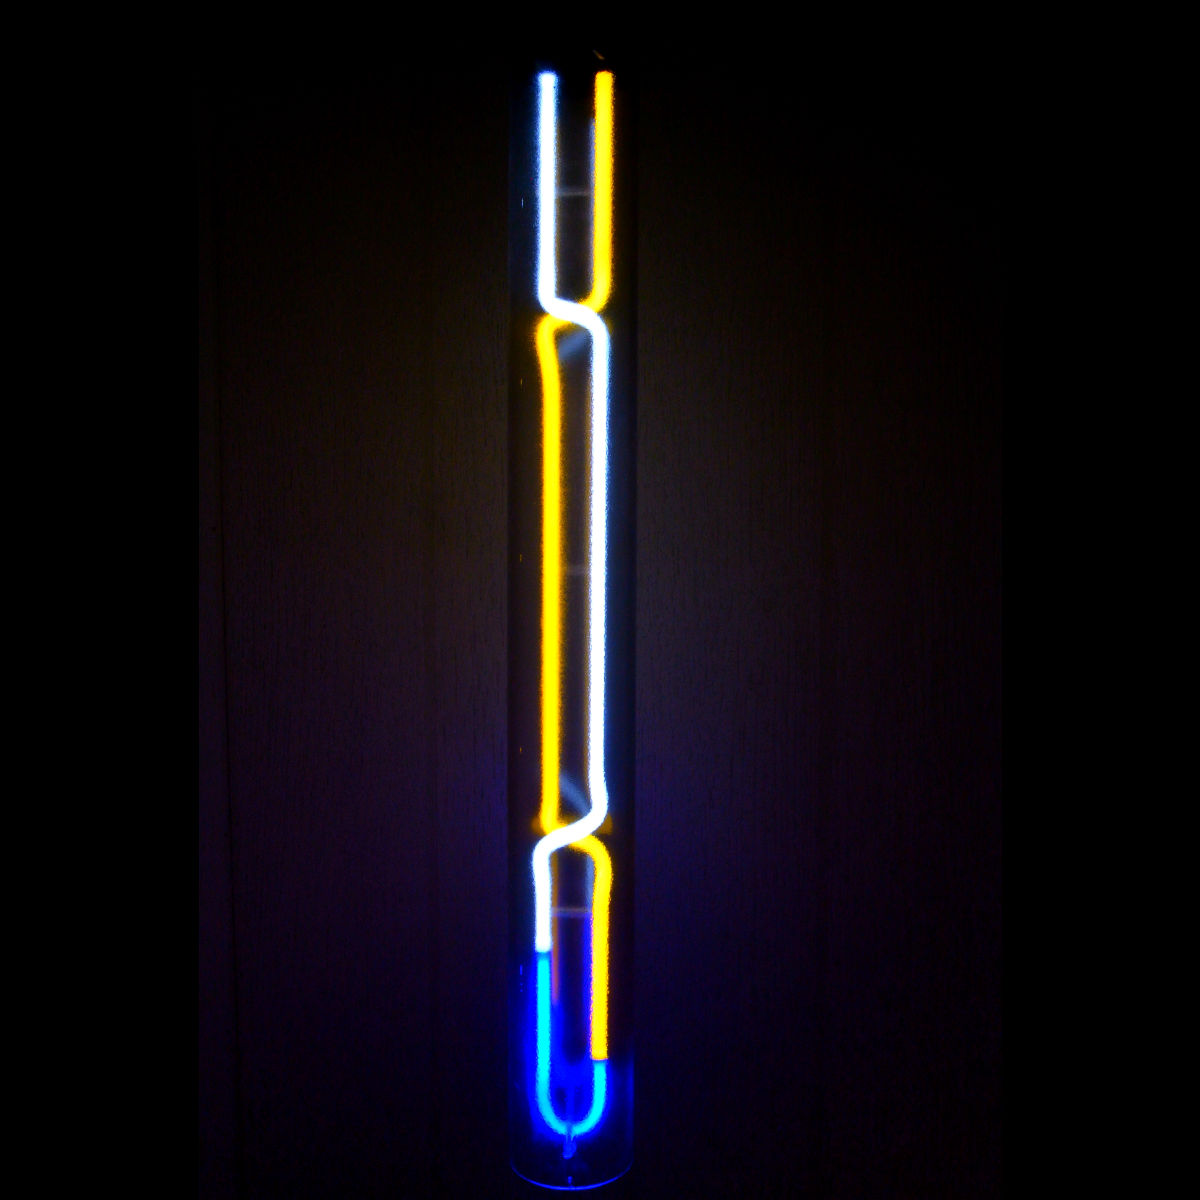 Norma Over Paris Neon Light Cylinders - ELEGANT MOOD LIGHTING by John Barton - BartonNeonMagic.com